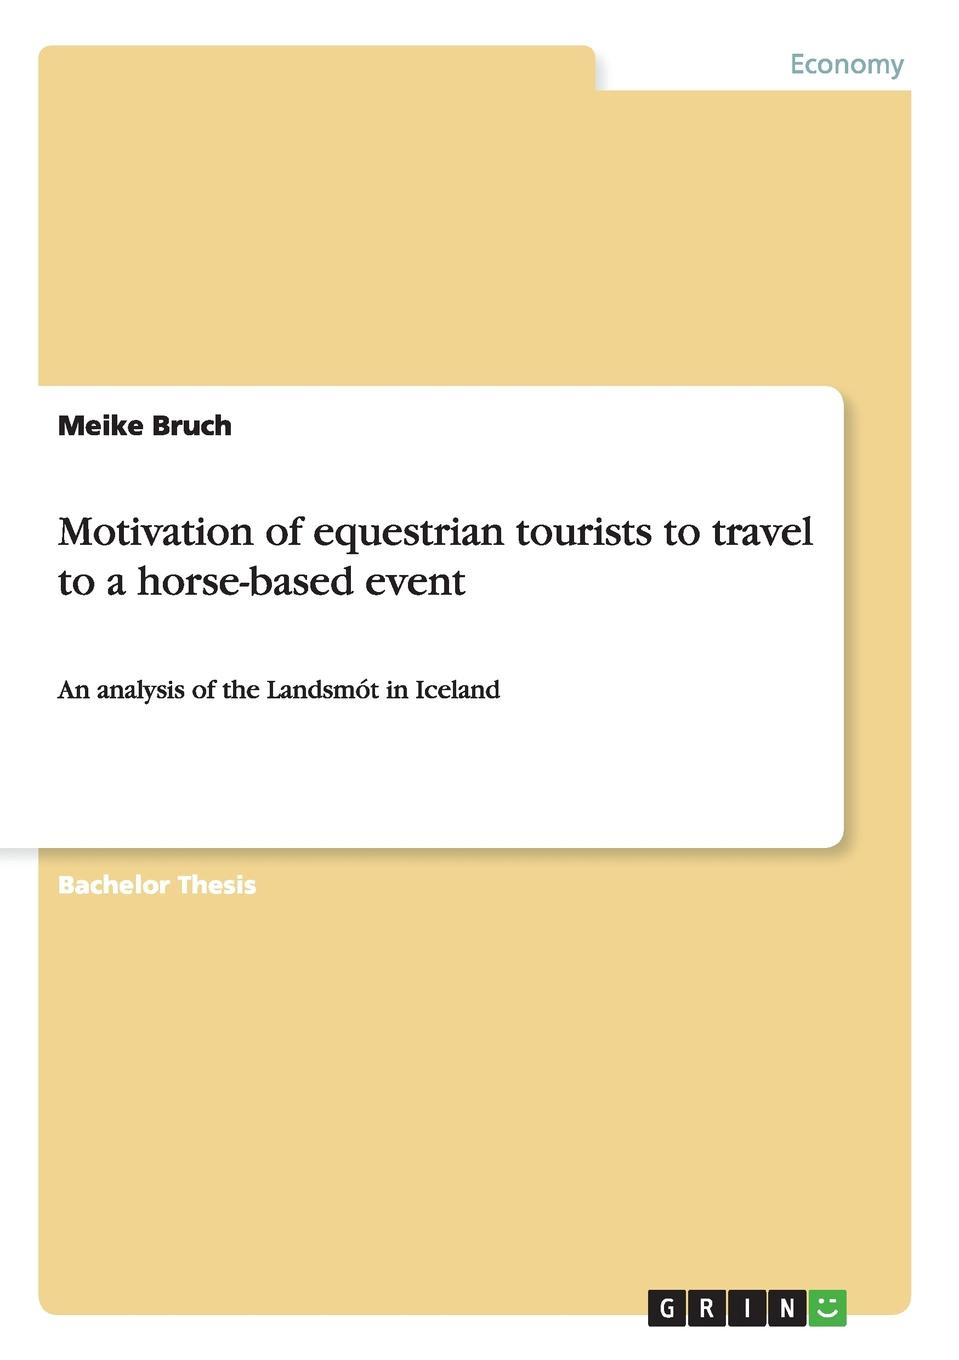 Meike Bruch Motivation of equestrian tourists to travel to a horse-based event